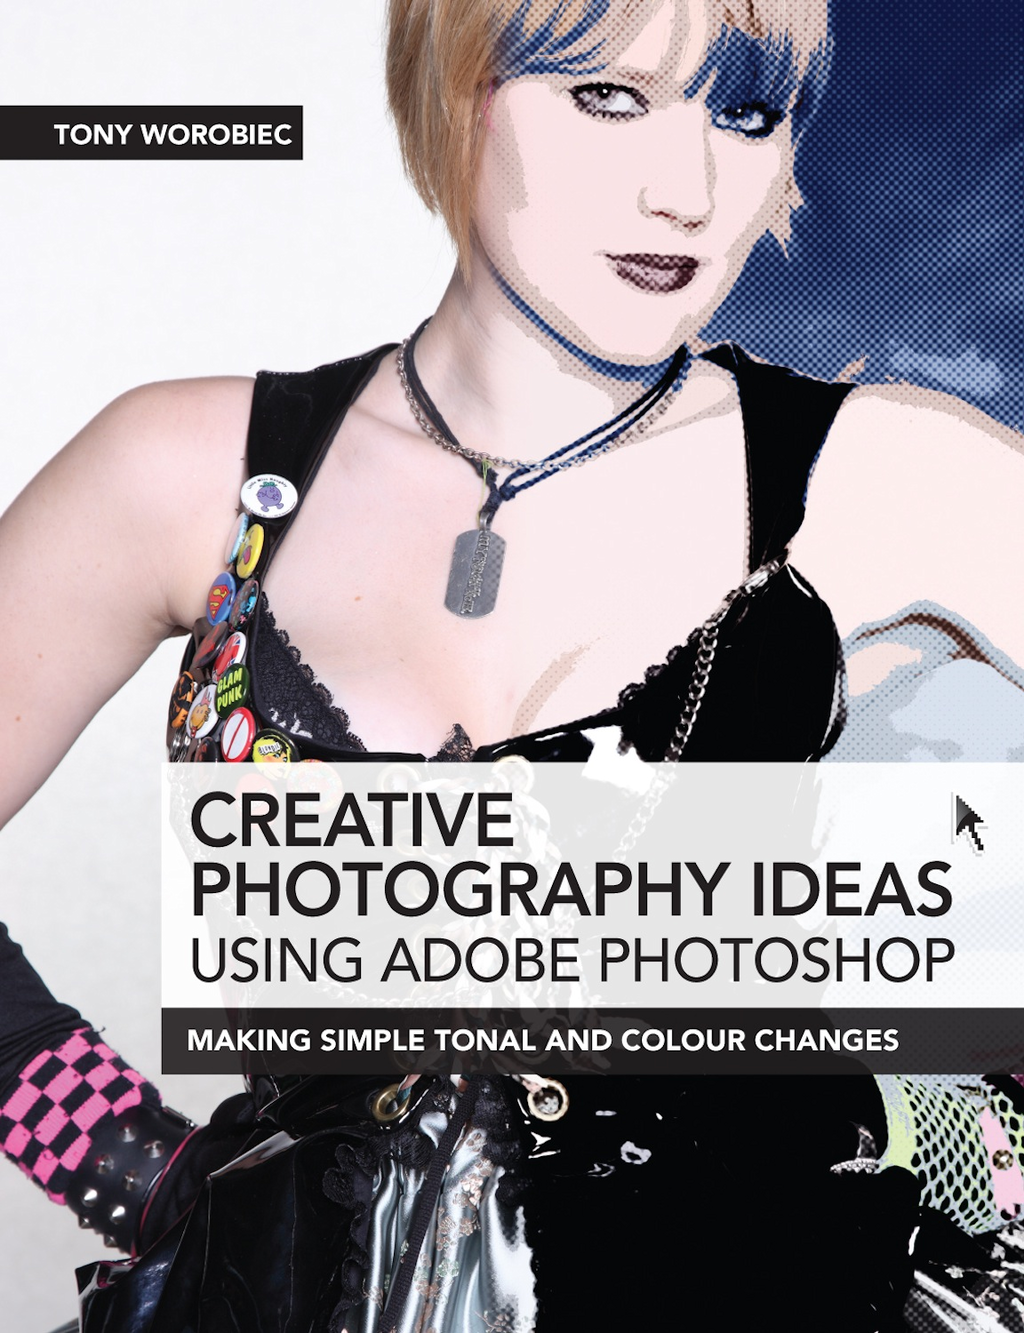 Creative Photography Ideas using Adobe Photoshop: Making Simple Tonal and Colour Changes